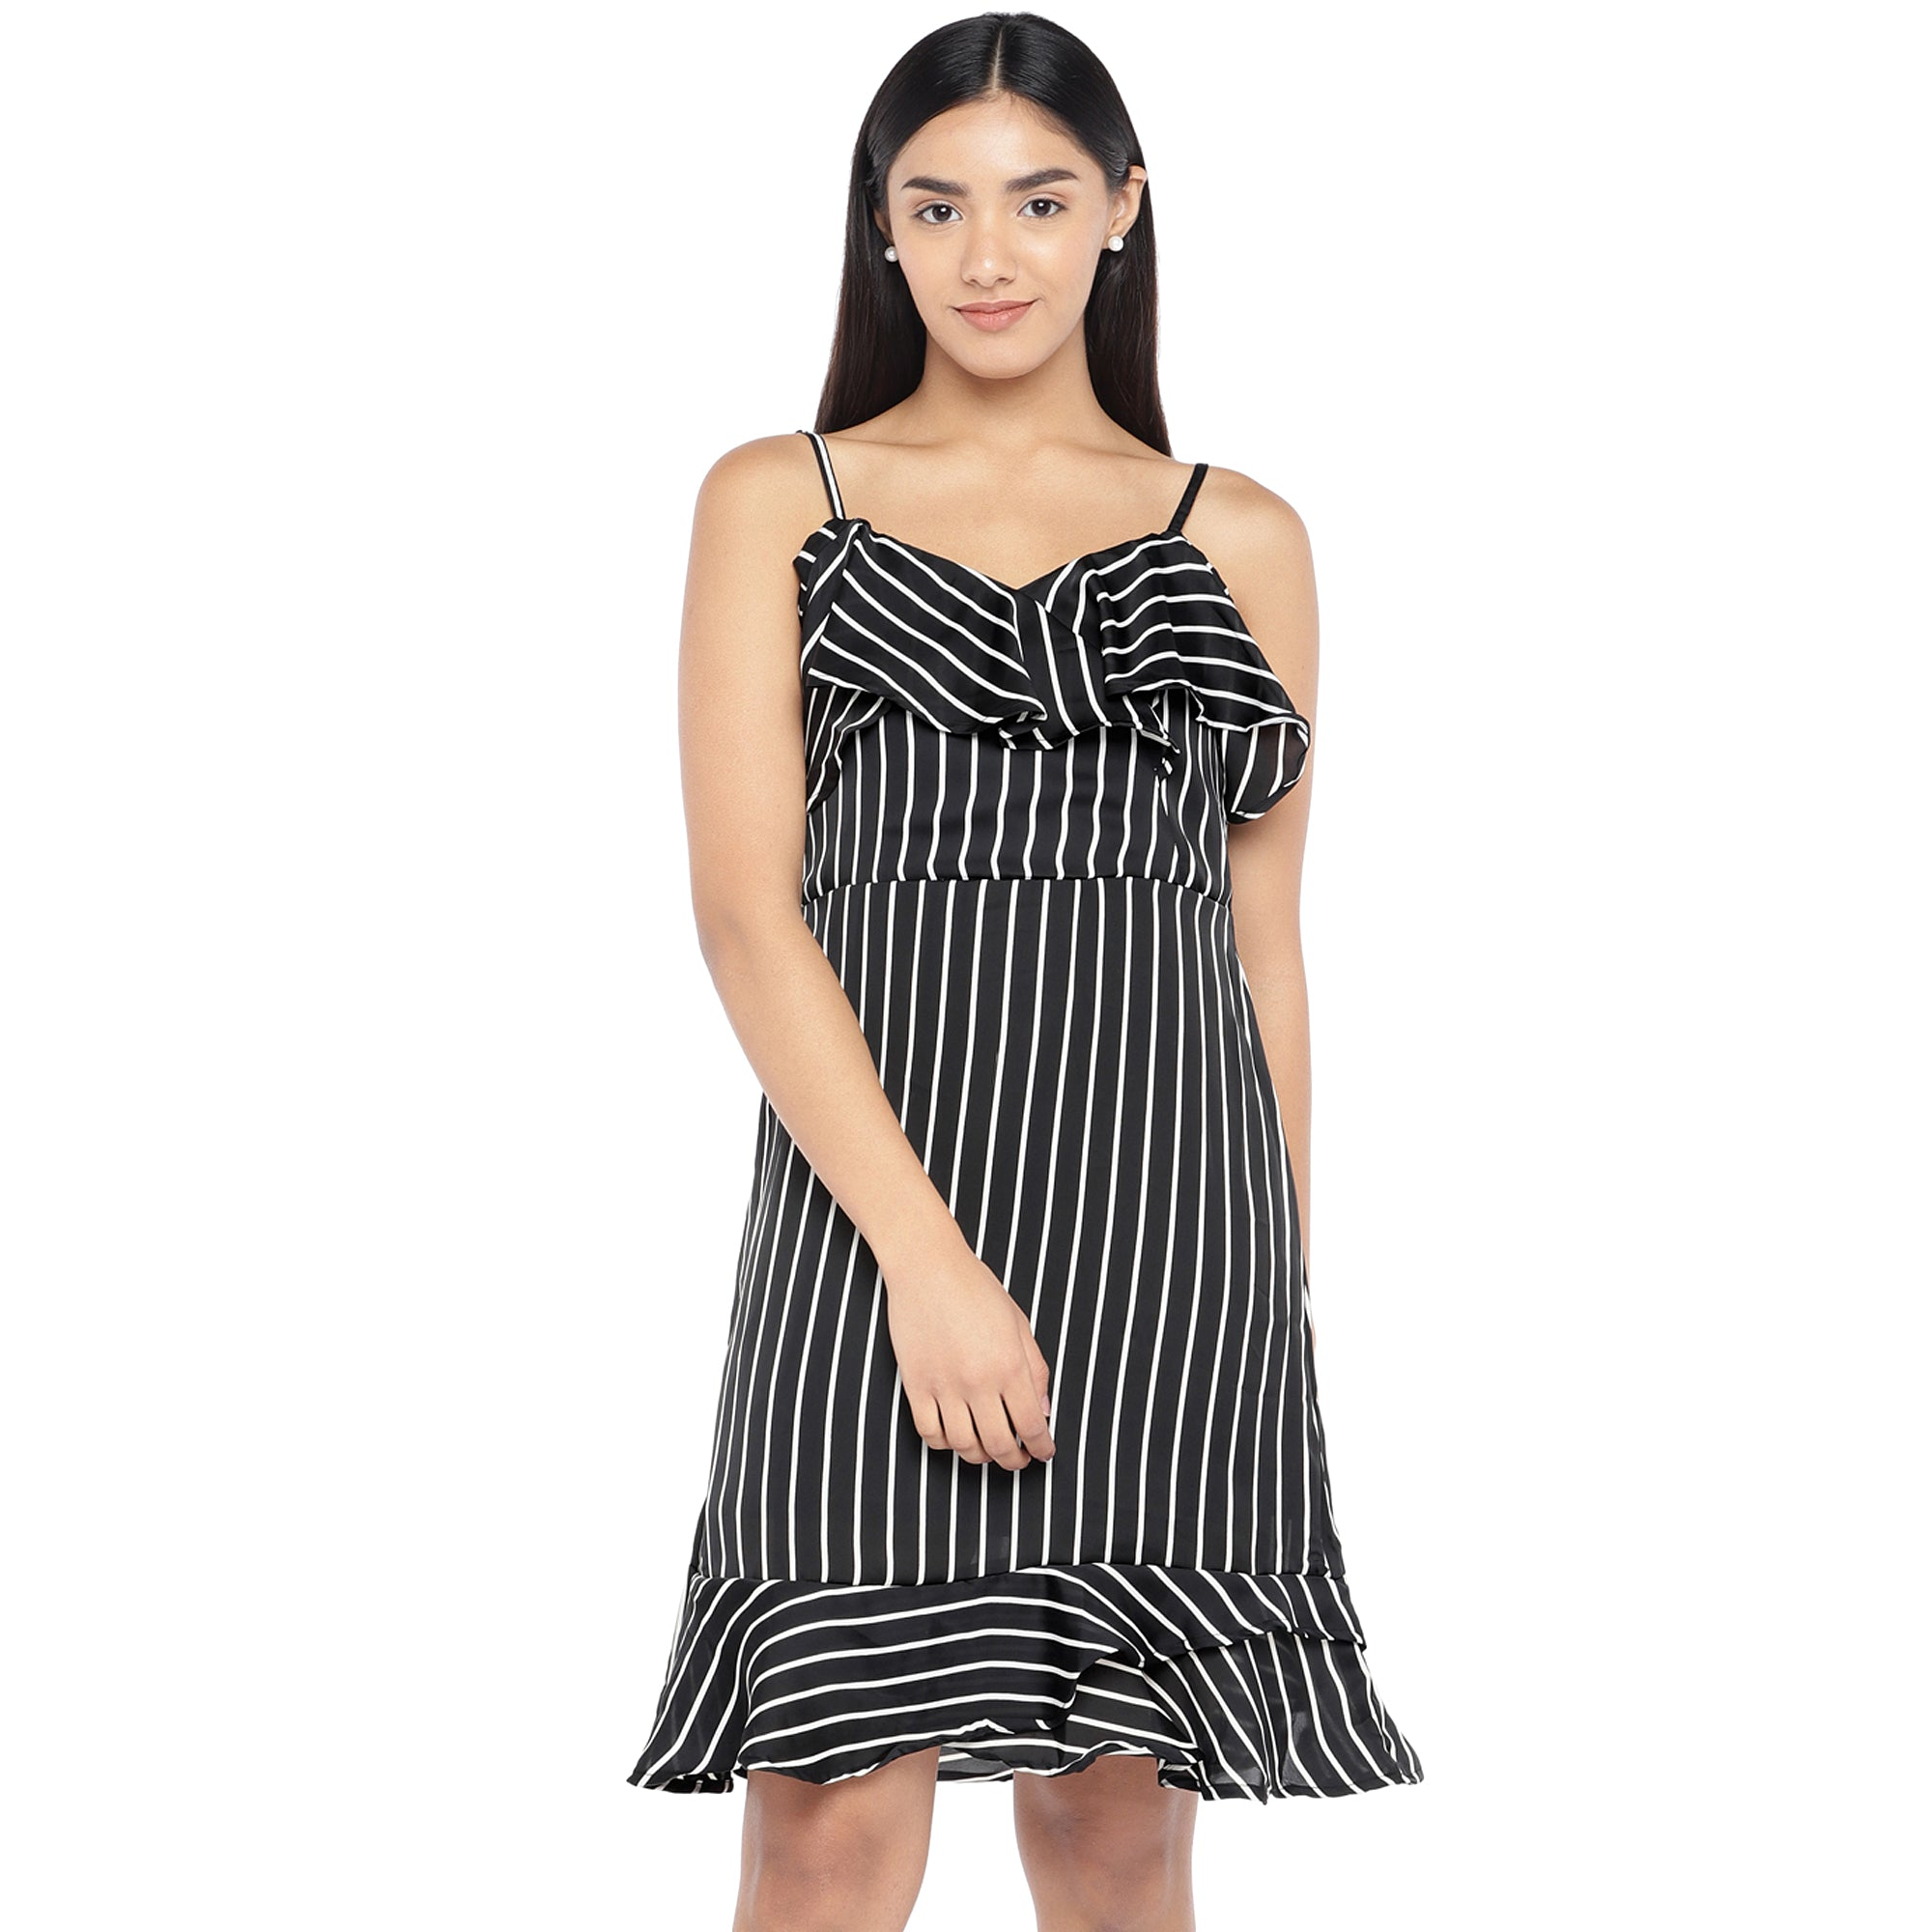 Black & White Striped A-Line Dress-1